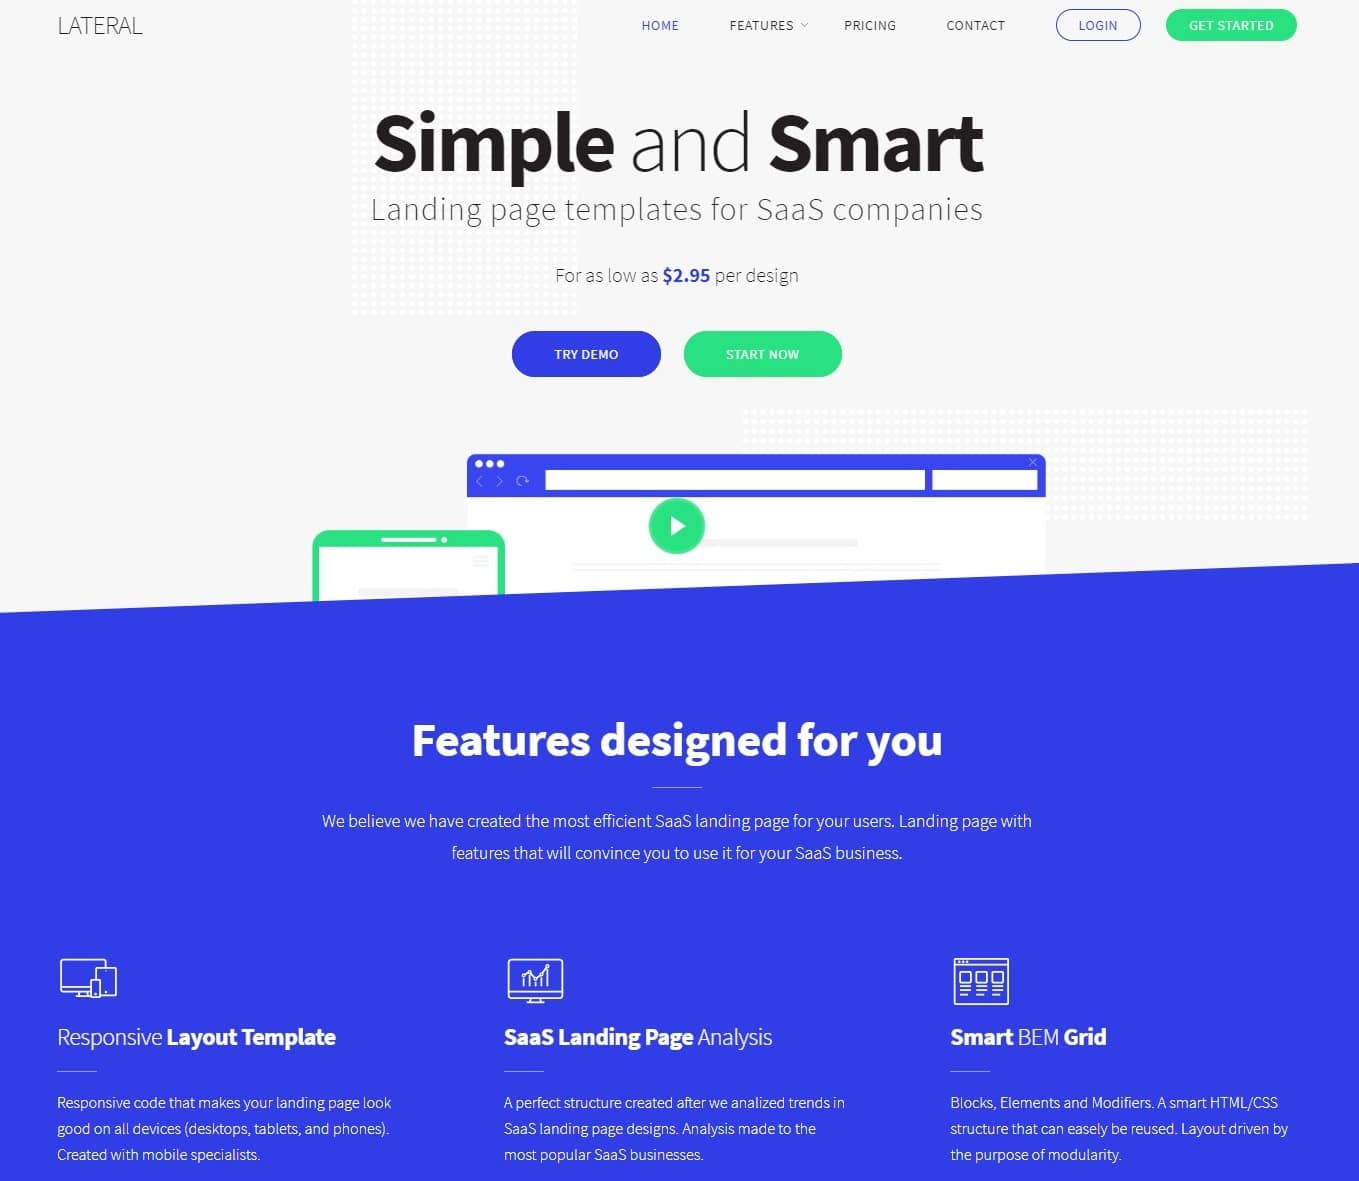 lateral-html-landing-page-templates-landing-page-design-wordpress